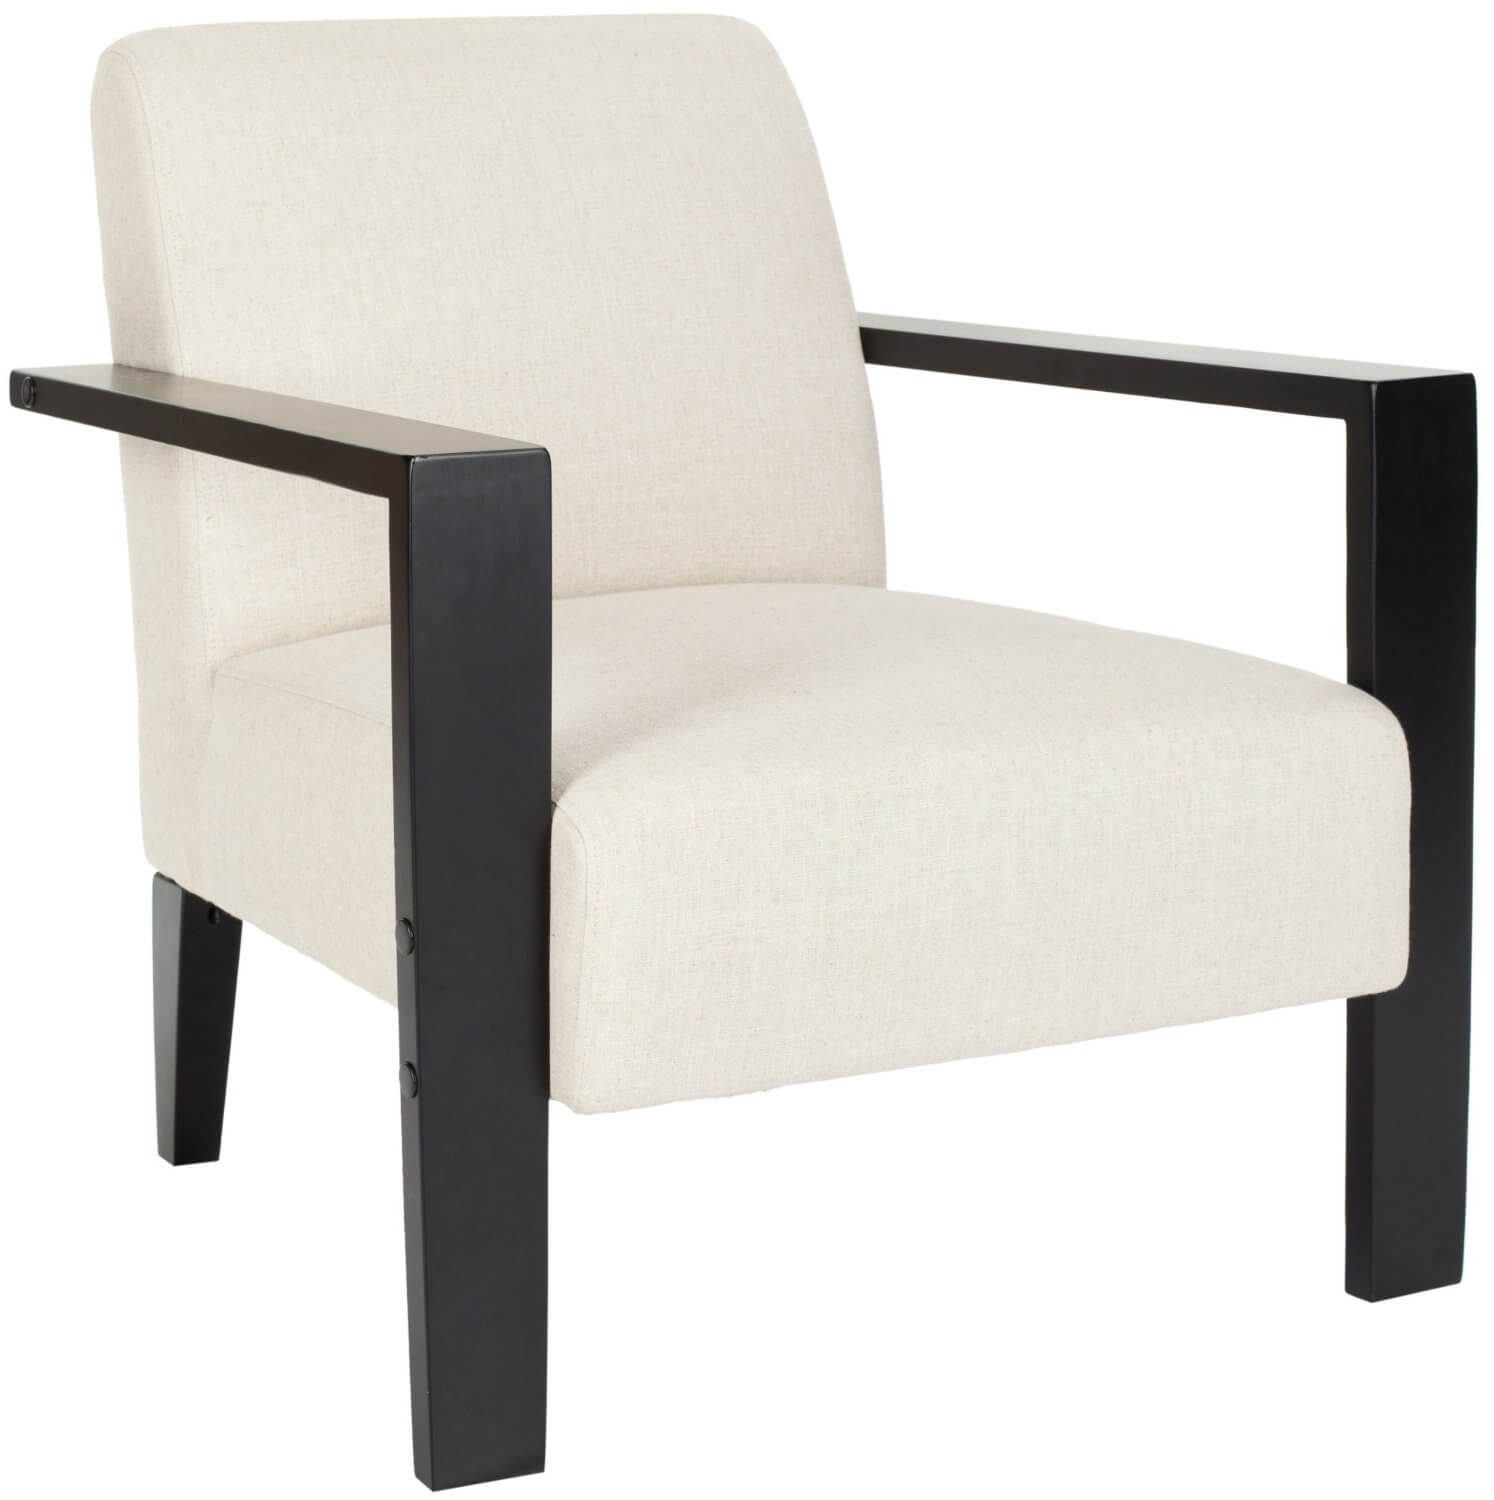 12 White Modern Accent Chairs for the Living Room